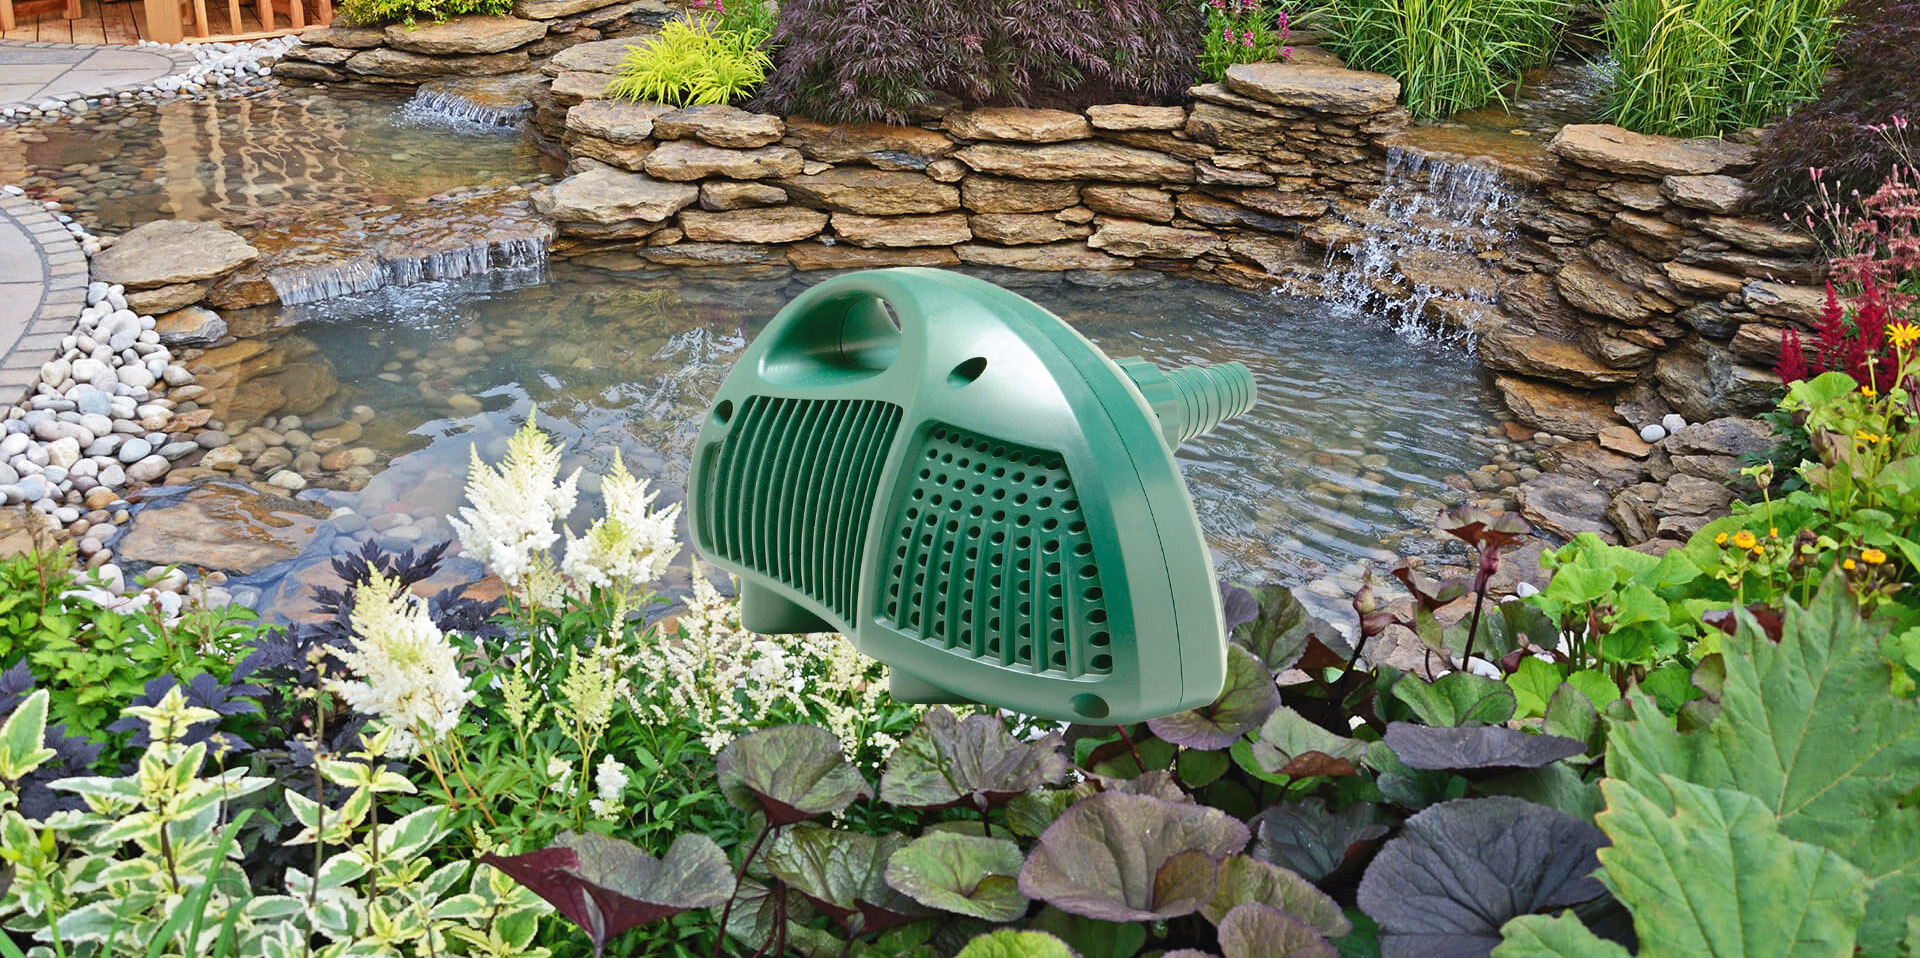 5 Best Pond Pumps – When You Want To Pump Your Pond